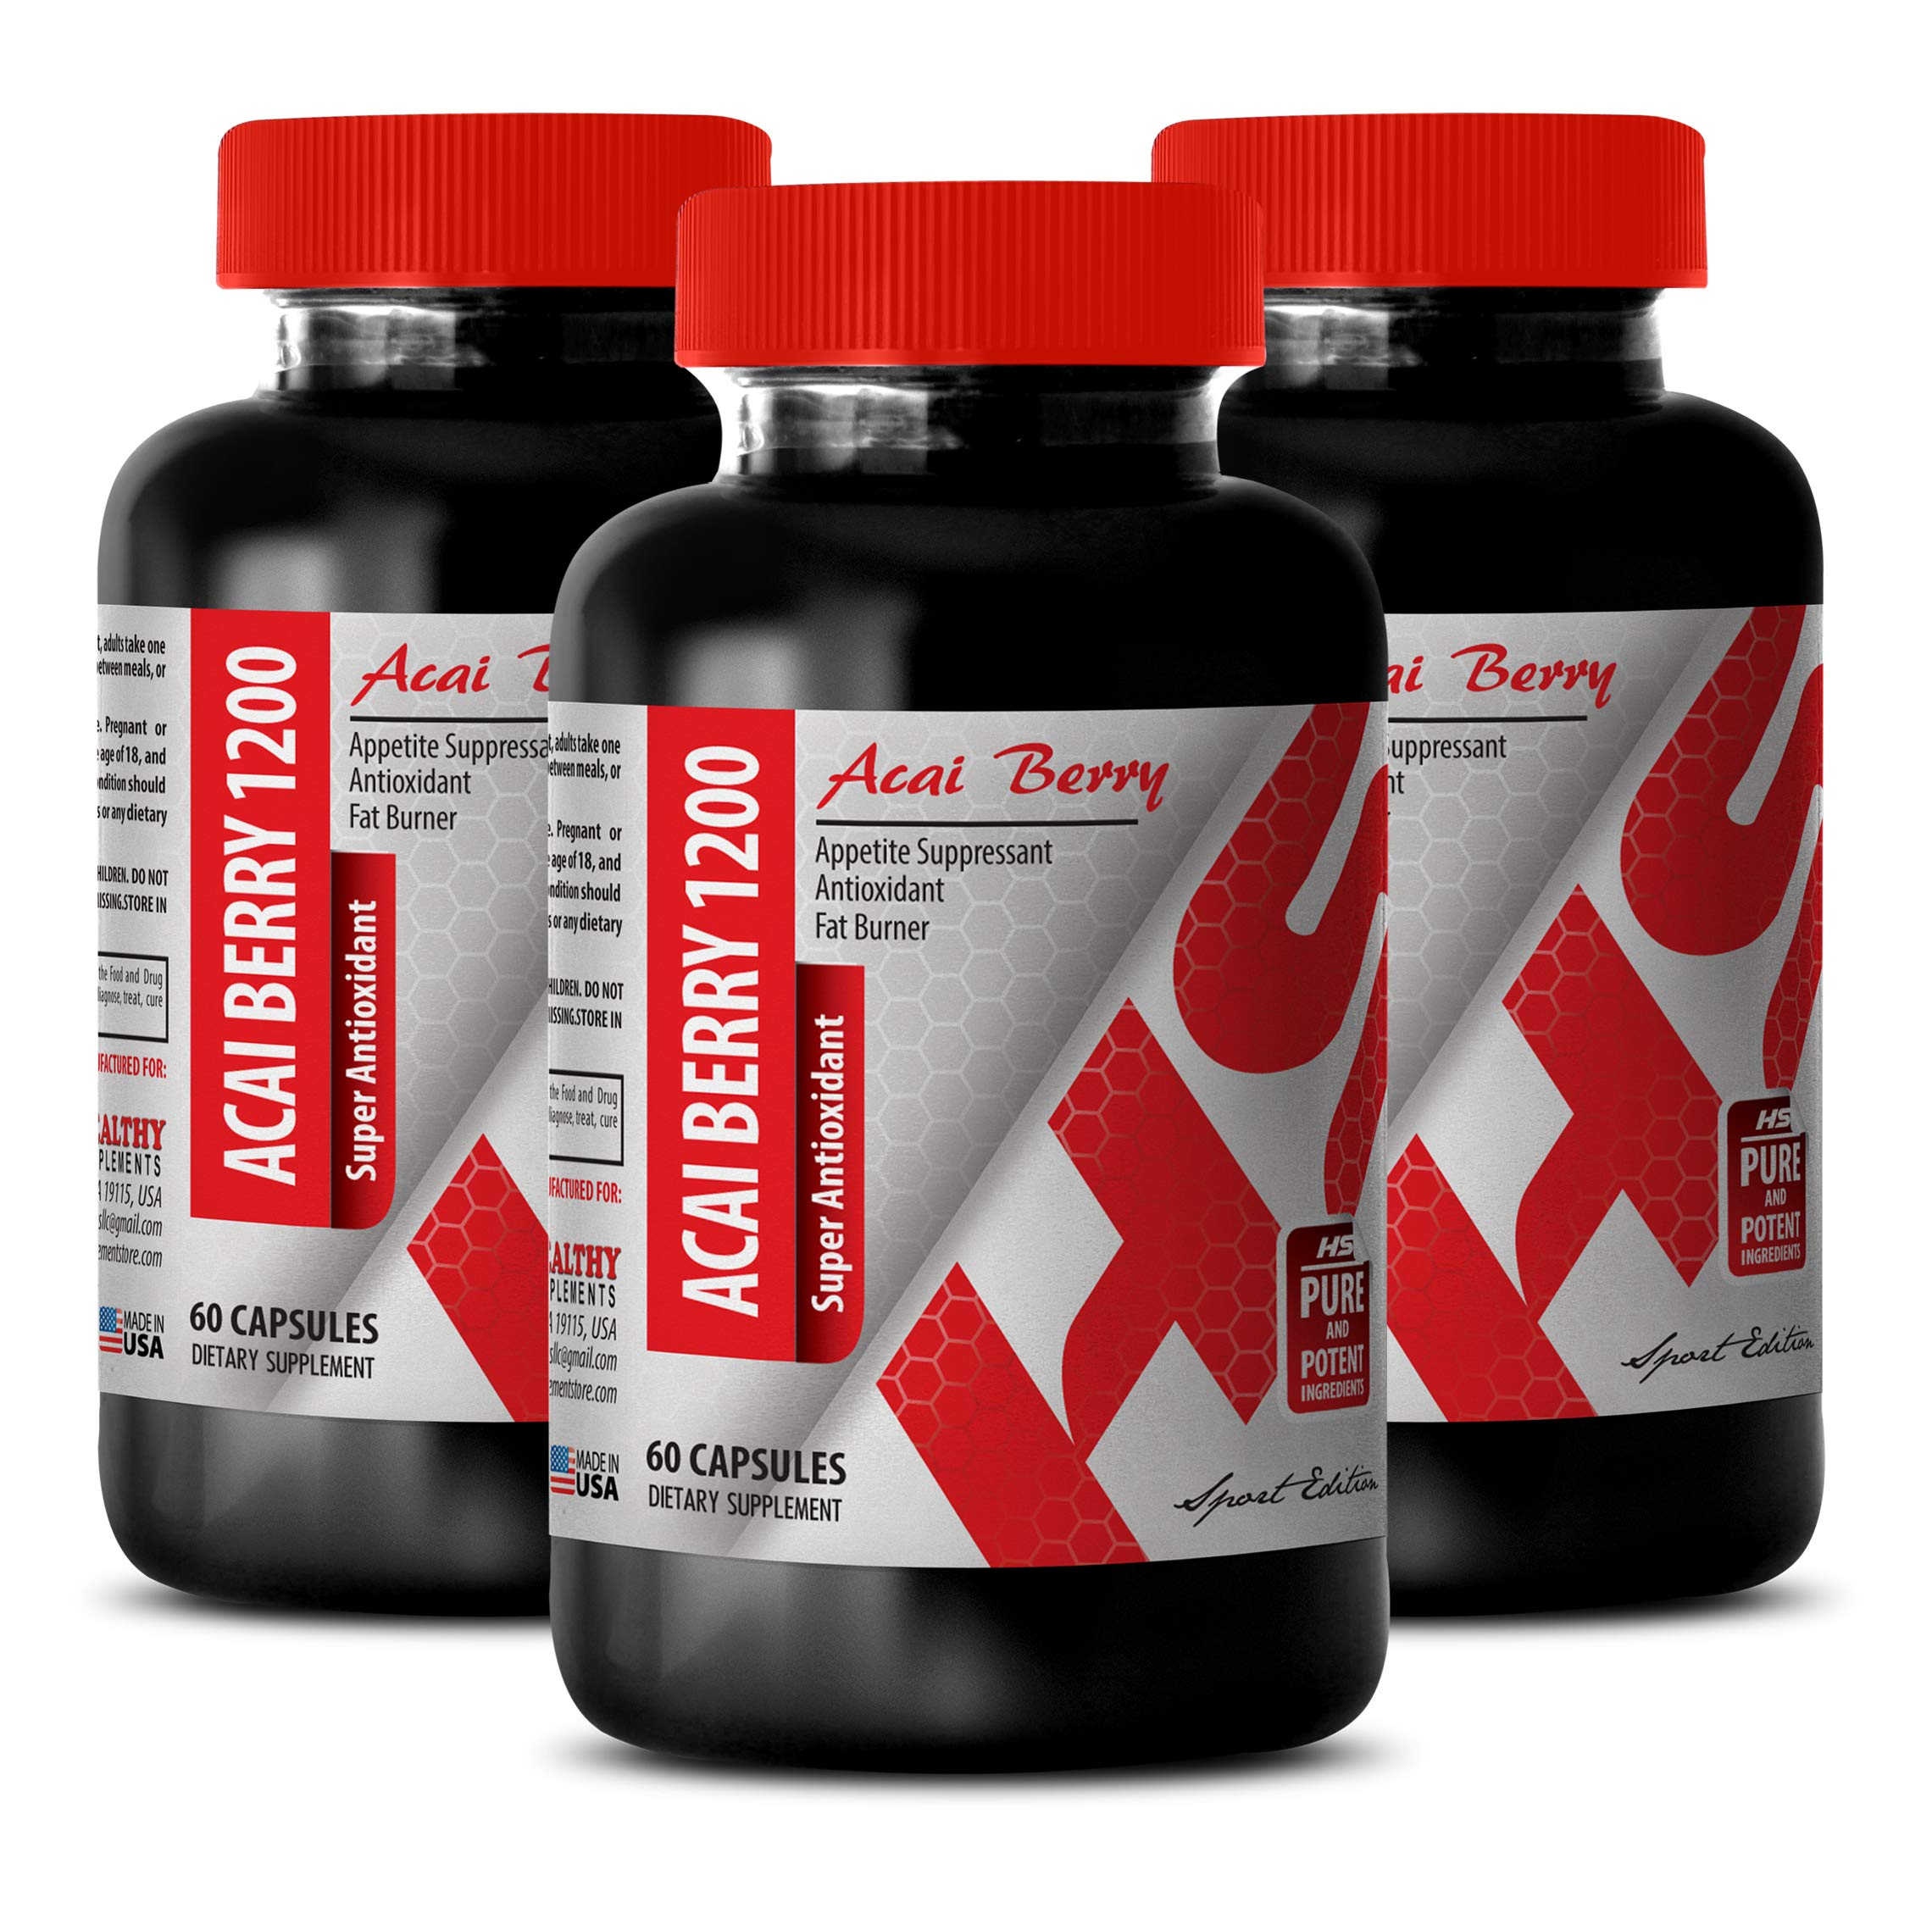 Immune Support Sugar Free - ACAI Berry 1200 MG - Super ANTIOXIDANT - acai Roots Pure acai - 3 Bottles (180 Capsules)